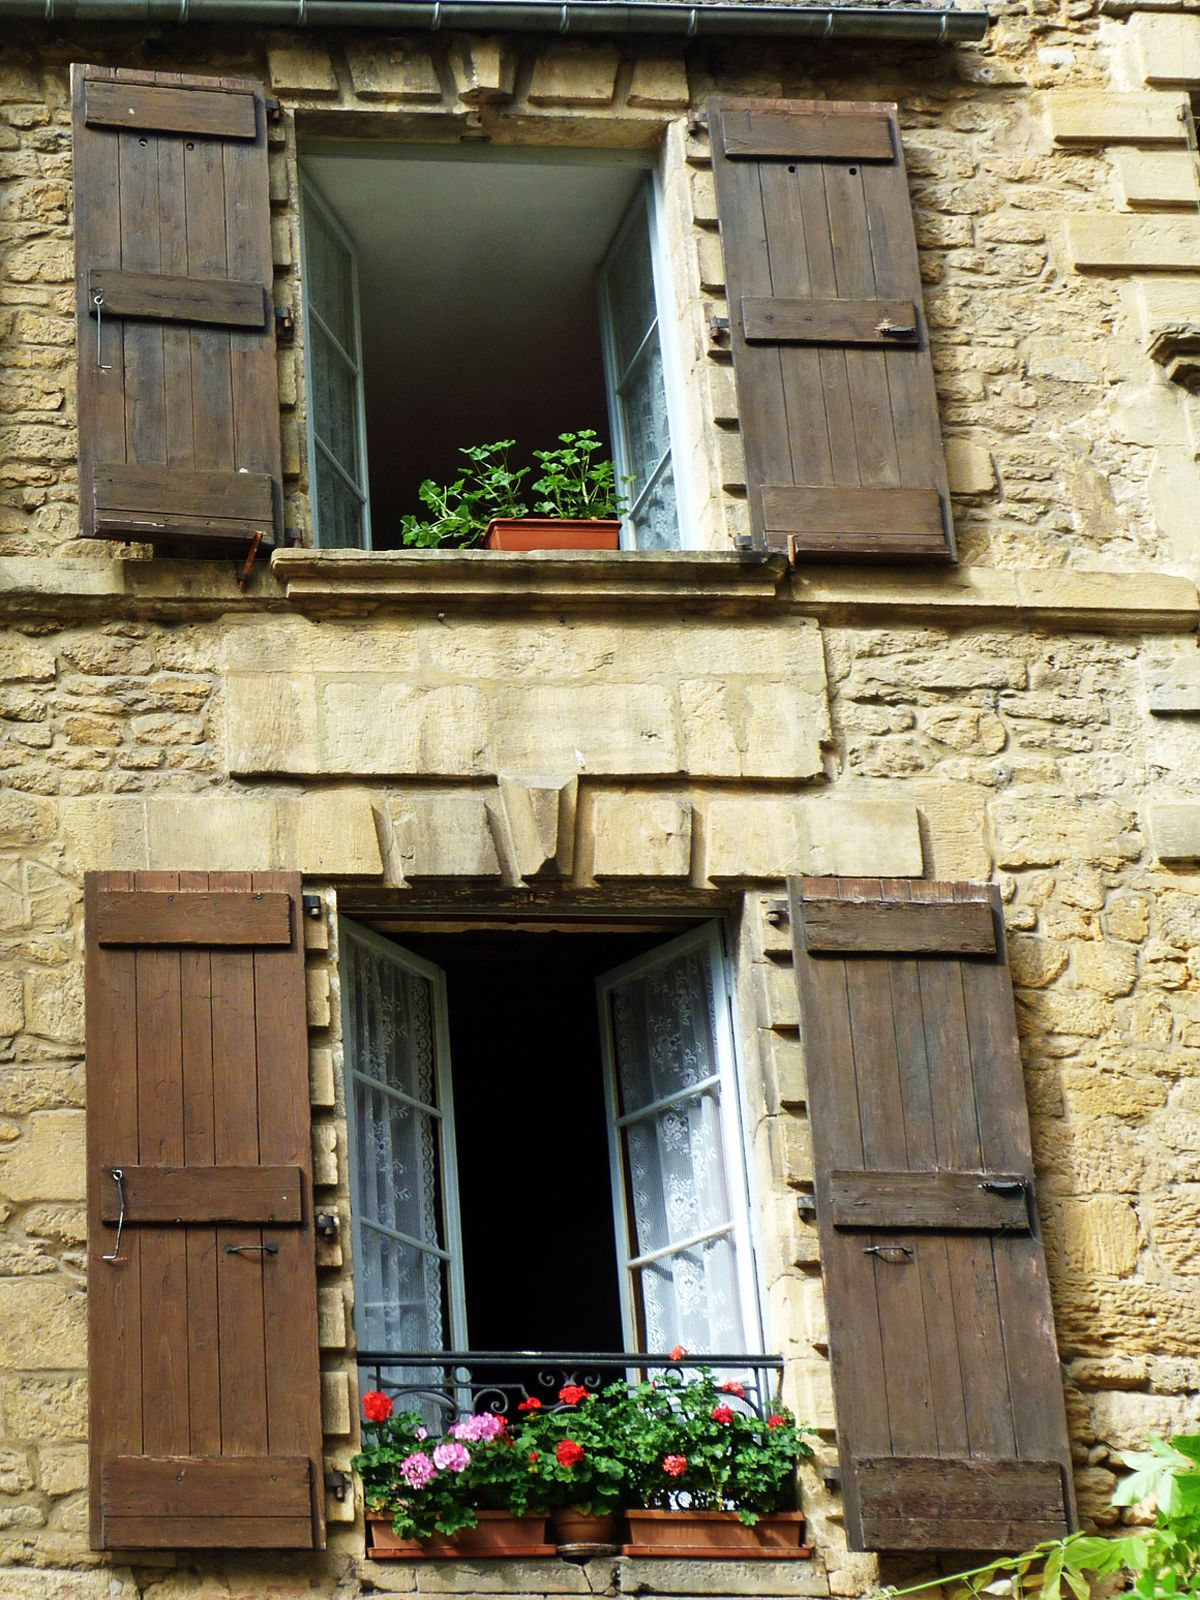 Rustic shutters and geraniums sarlat home ideas in - Rustic home exterior color schemes ...